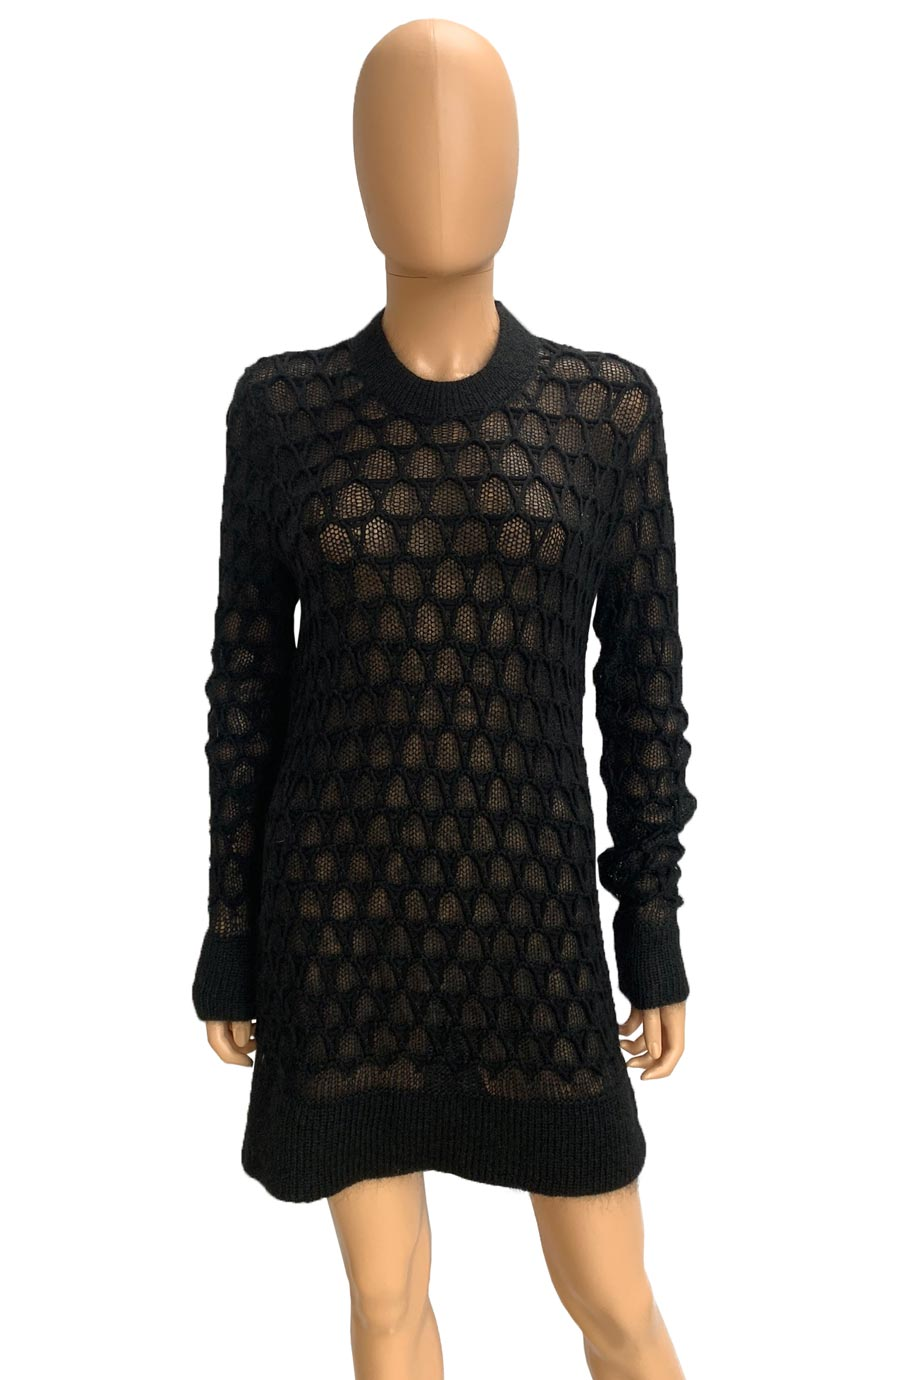 Helmut Lang Black Corded Lace Mohair Knit Pullover Sweater / Sz S-Style Therapy